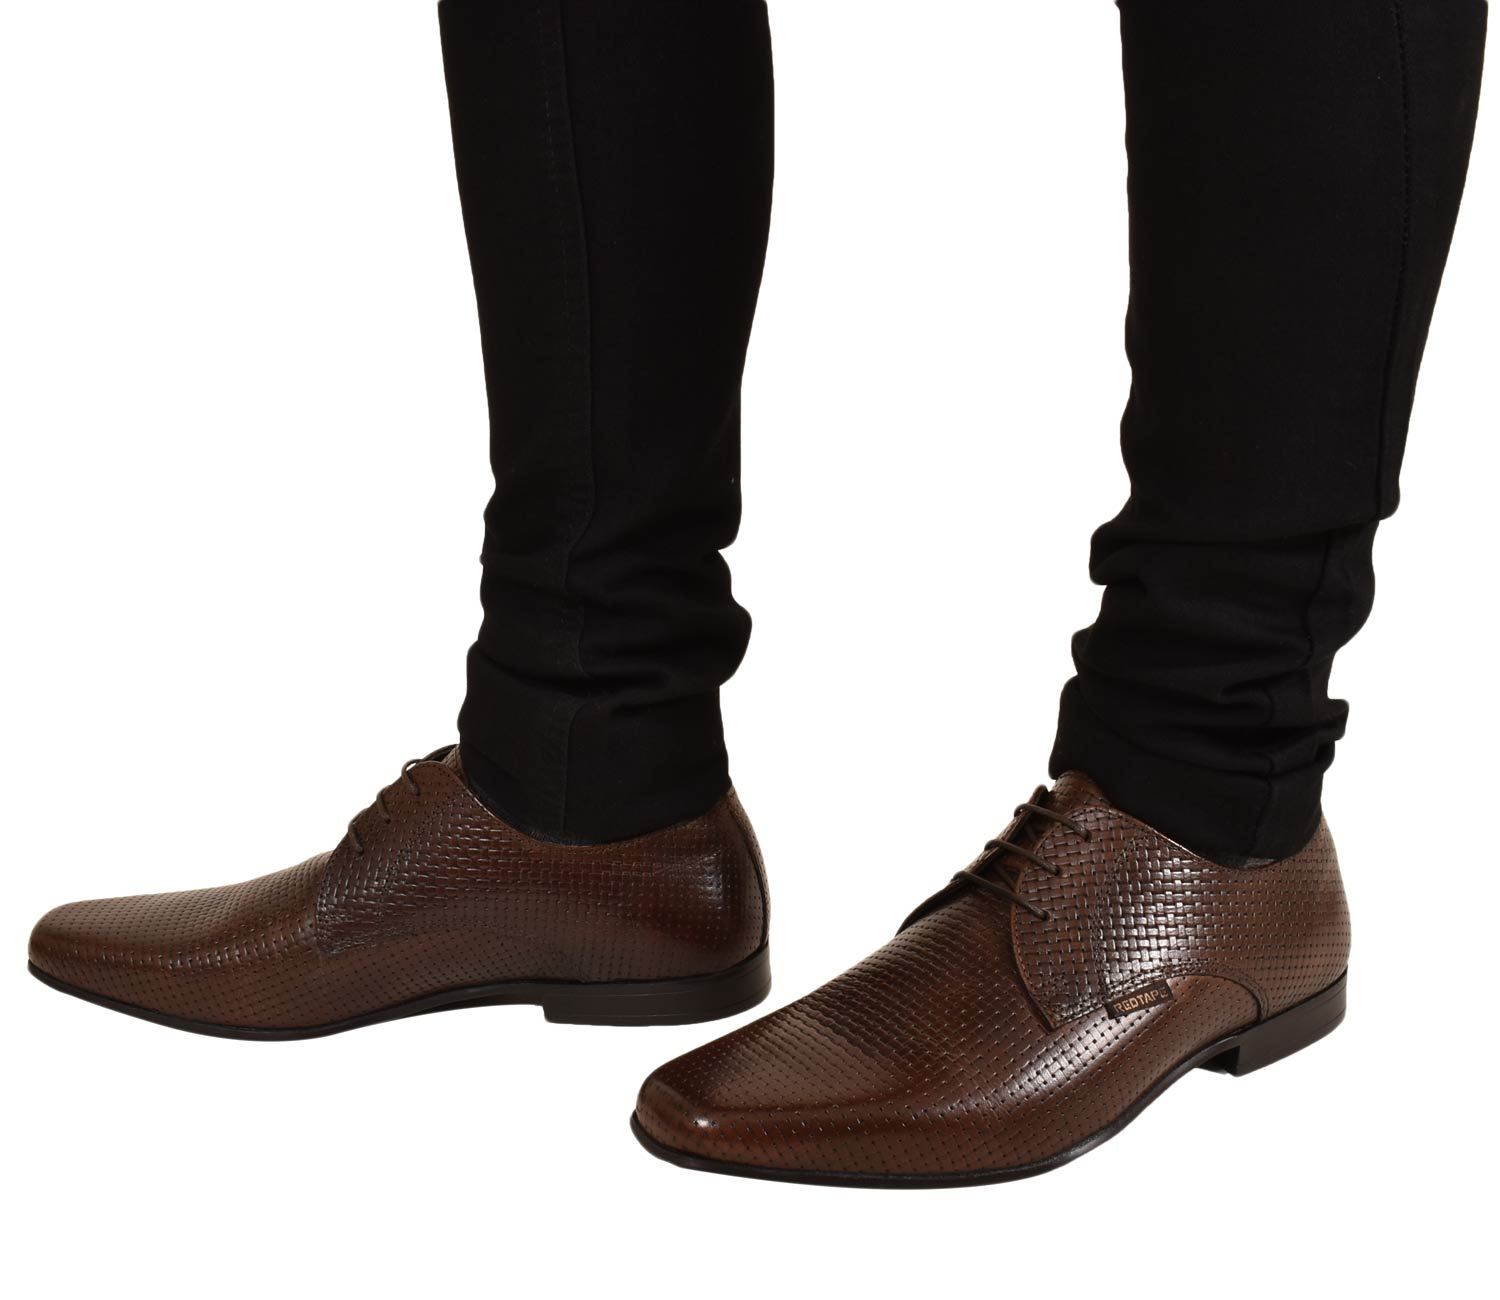 Mens-UK-Style-Leather-Lining-Formal-Office-Wedding-Smart-Work-Brogue-Shoes thumbnail 65